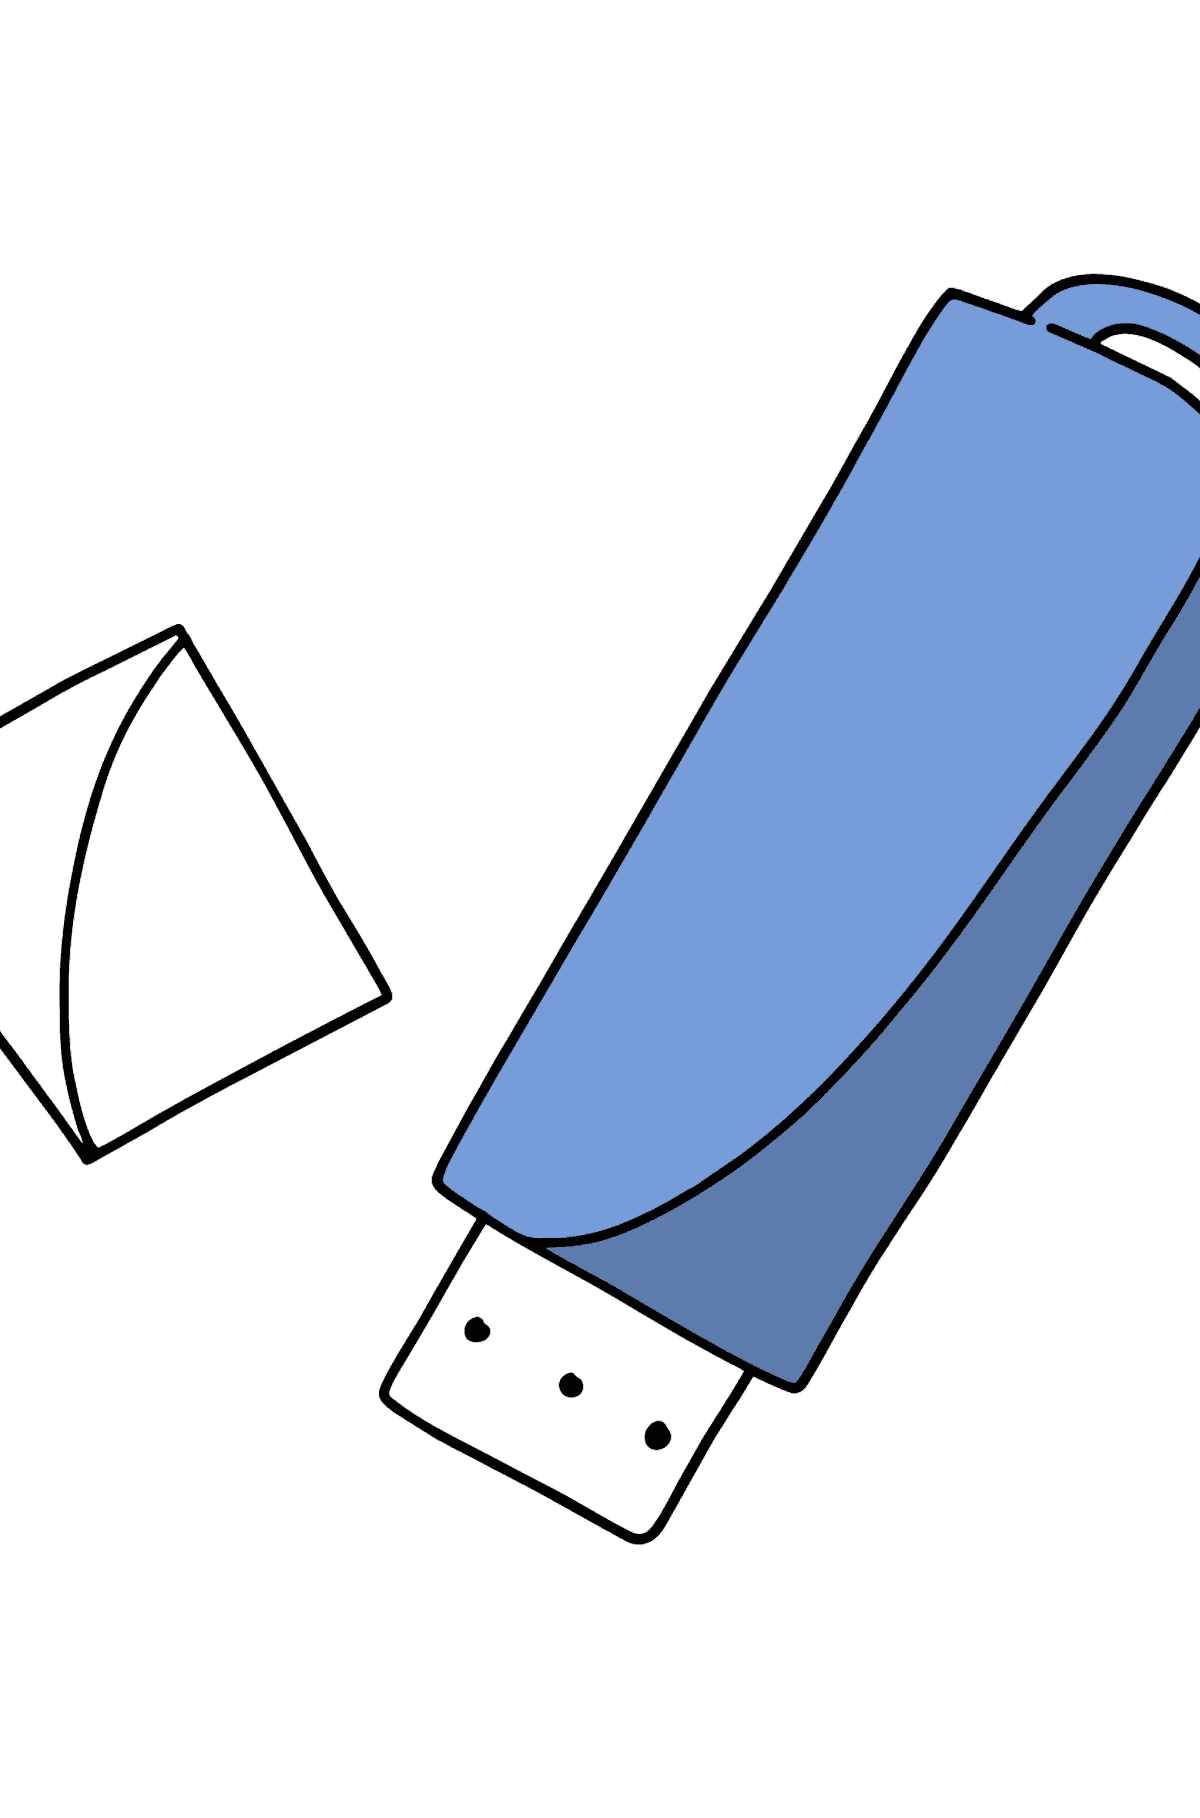 Flash Drive coloring page - Coloring Pages for Kids